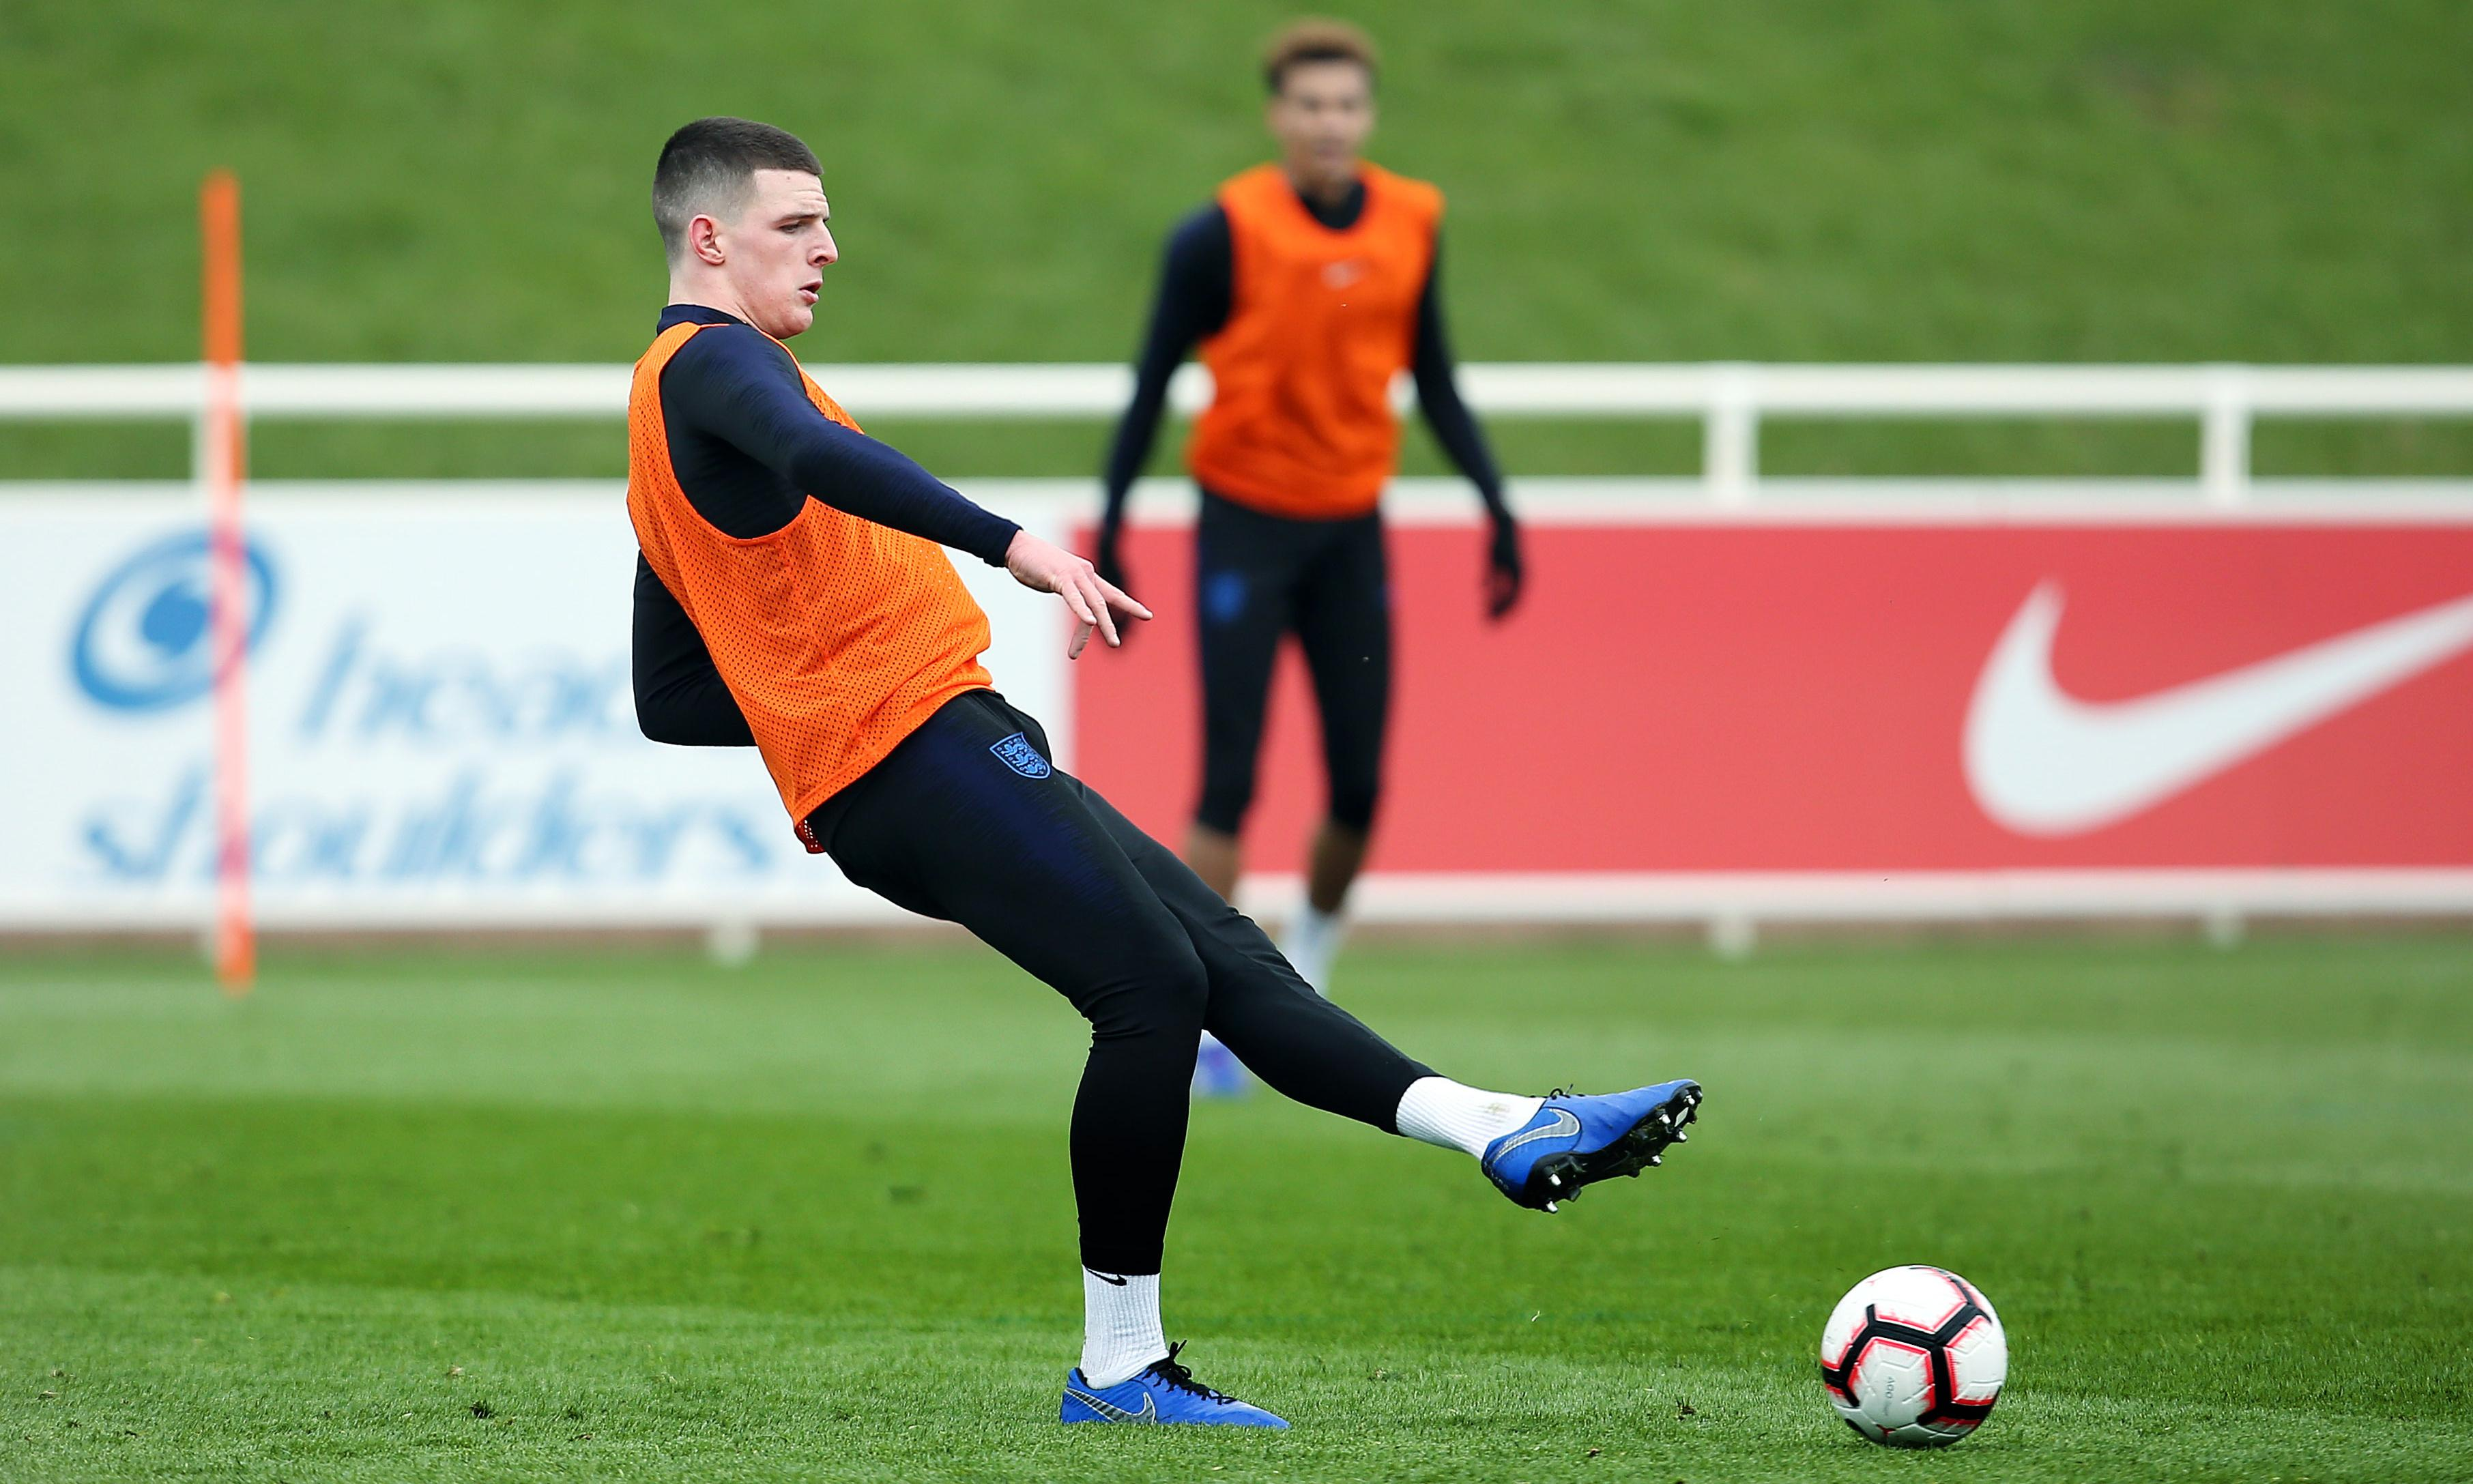 Declan Rice survives put-downs to reveal rich England promise